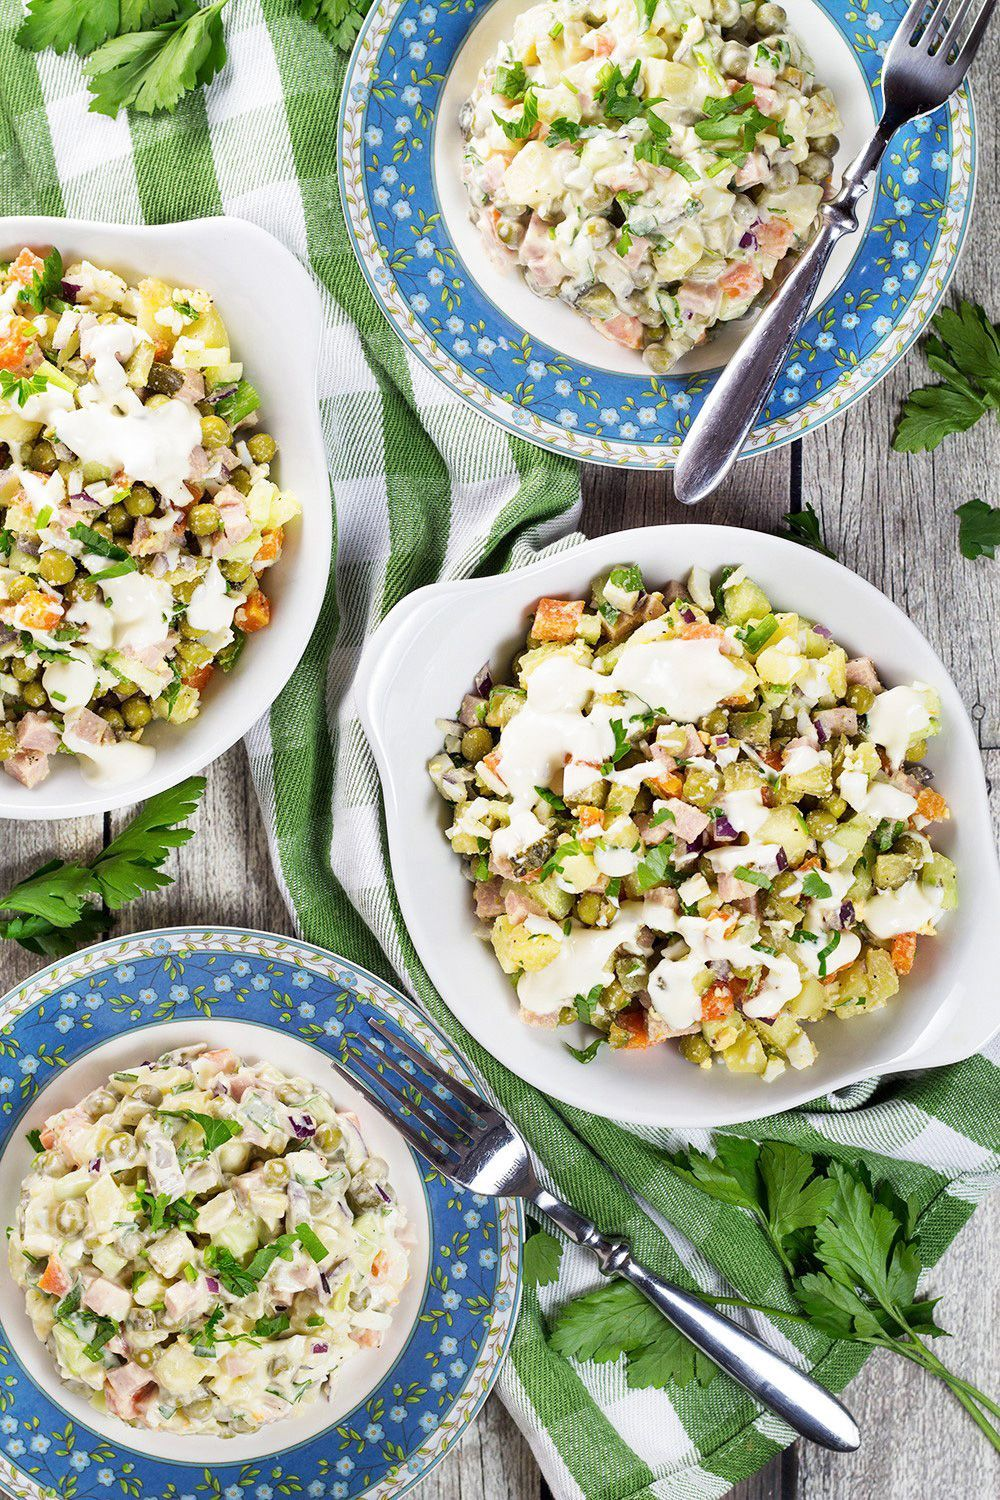 Olivier Salad, also known as Russian Potato Salad, is one of the most famous Russian foods. It is hearty, comforting, filling, and super delicious! | cookingtheglobe.com #olivierrussischersalat Olivier Salad, also known as Russian Potato Salad, is one of the most famous Russian foods. It is hearty, comforting, filling, and super delicious! | cookingtheglobe.com #olivierrussischersalat